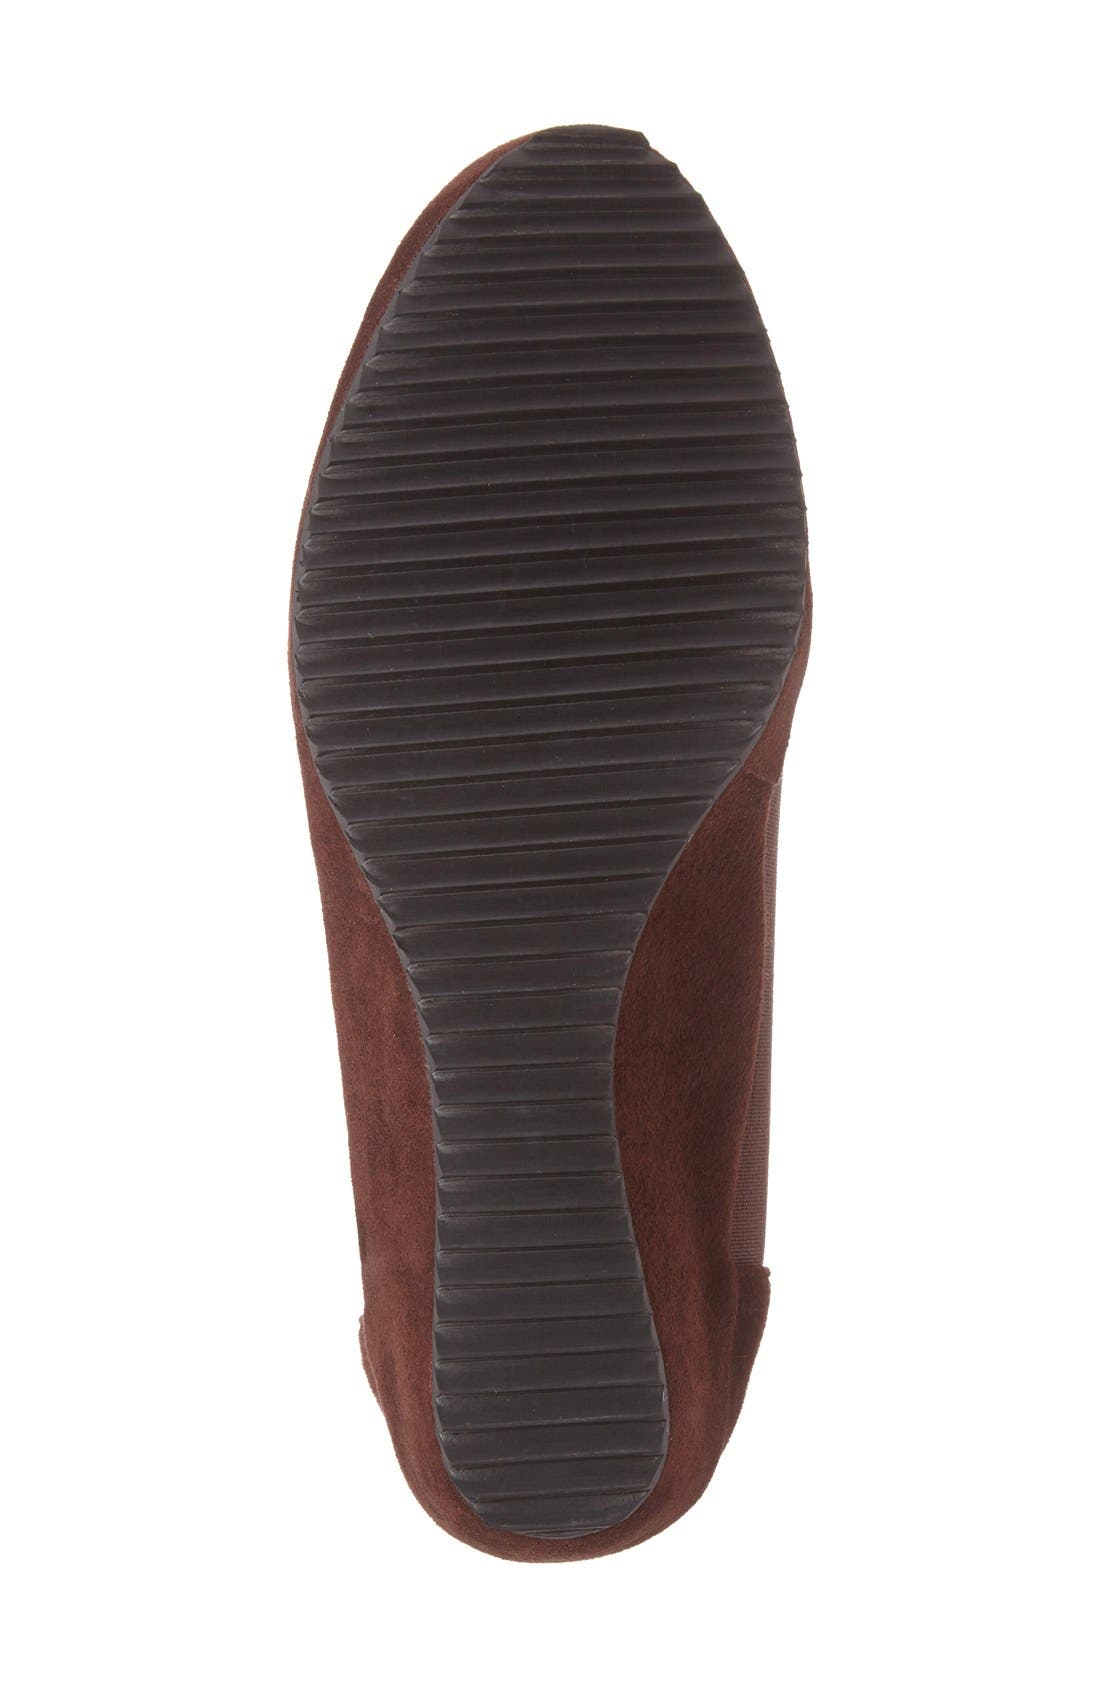 'Bowden' Slip-On Wedge,                             Alternate thumbnail 4, color,                             Espresso Suede Leather